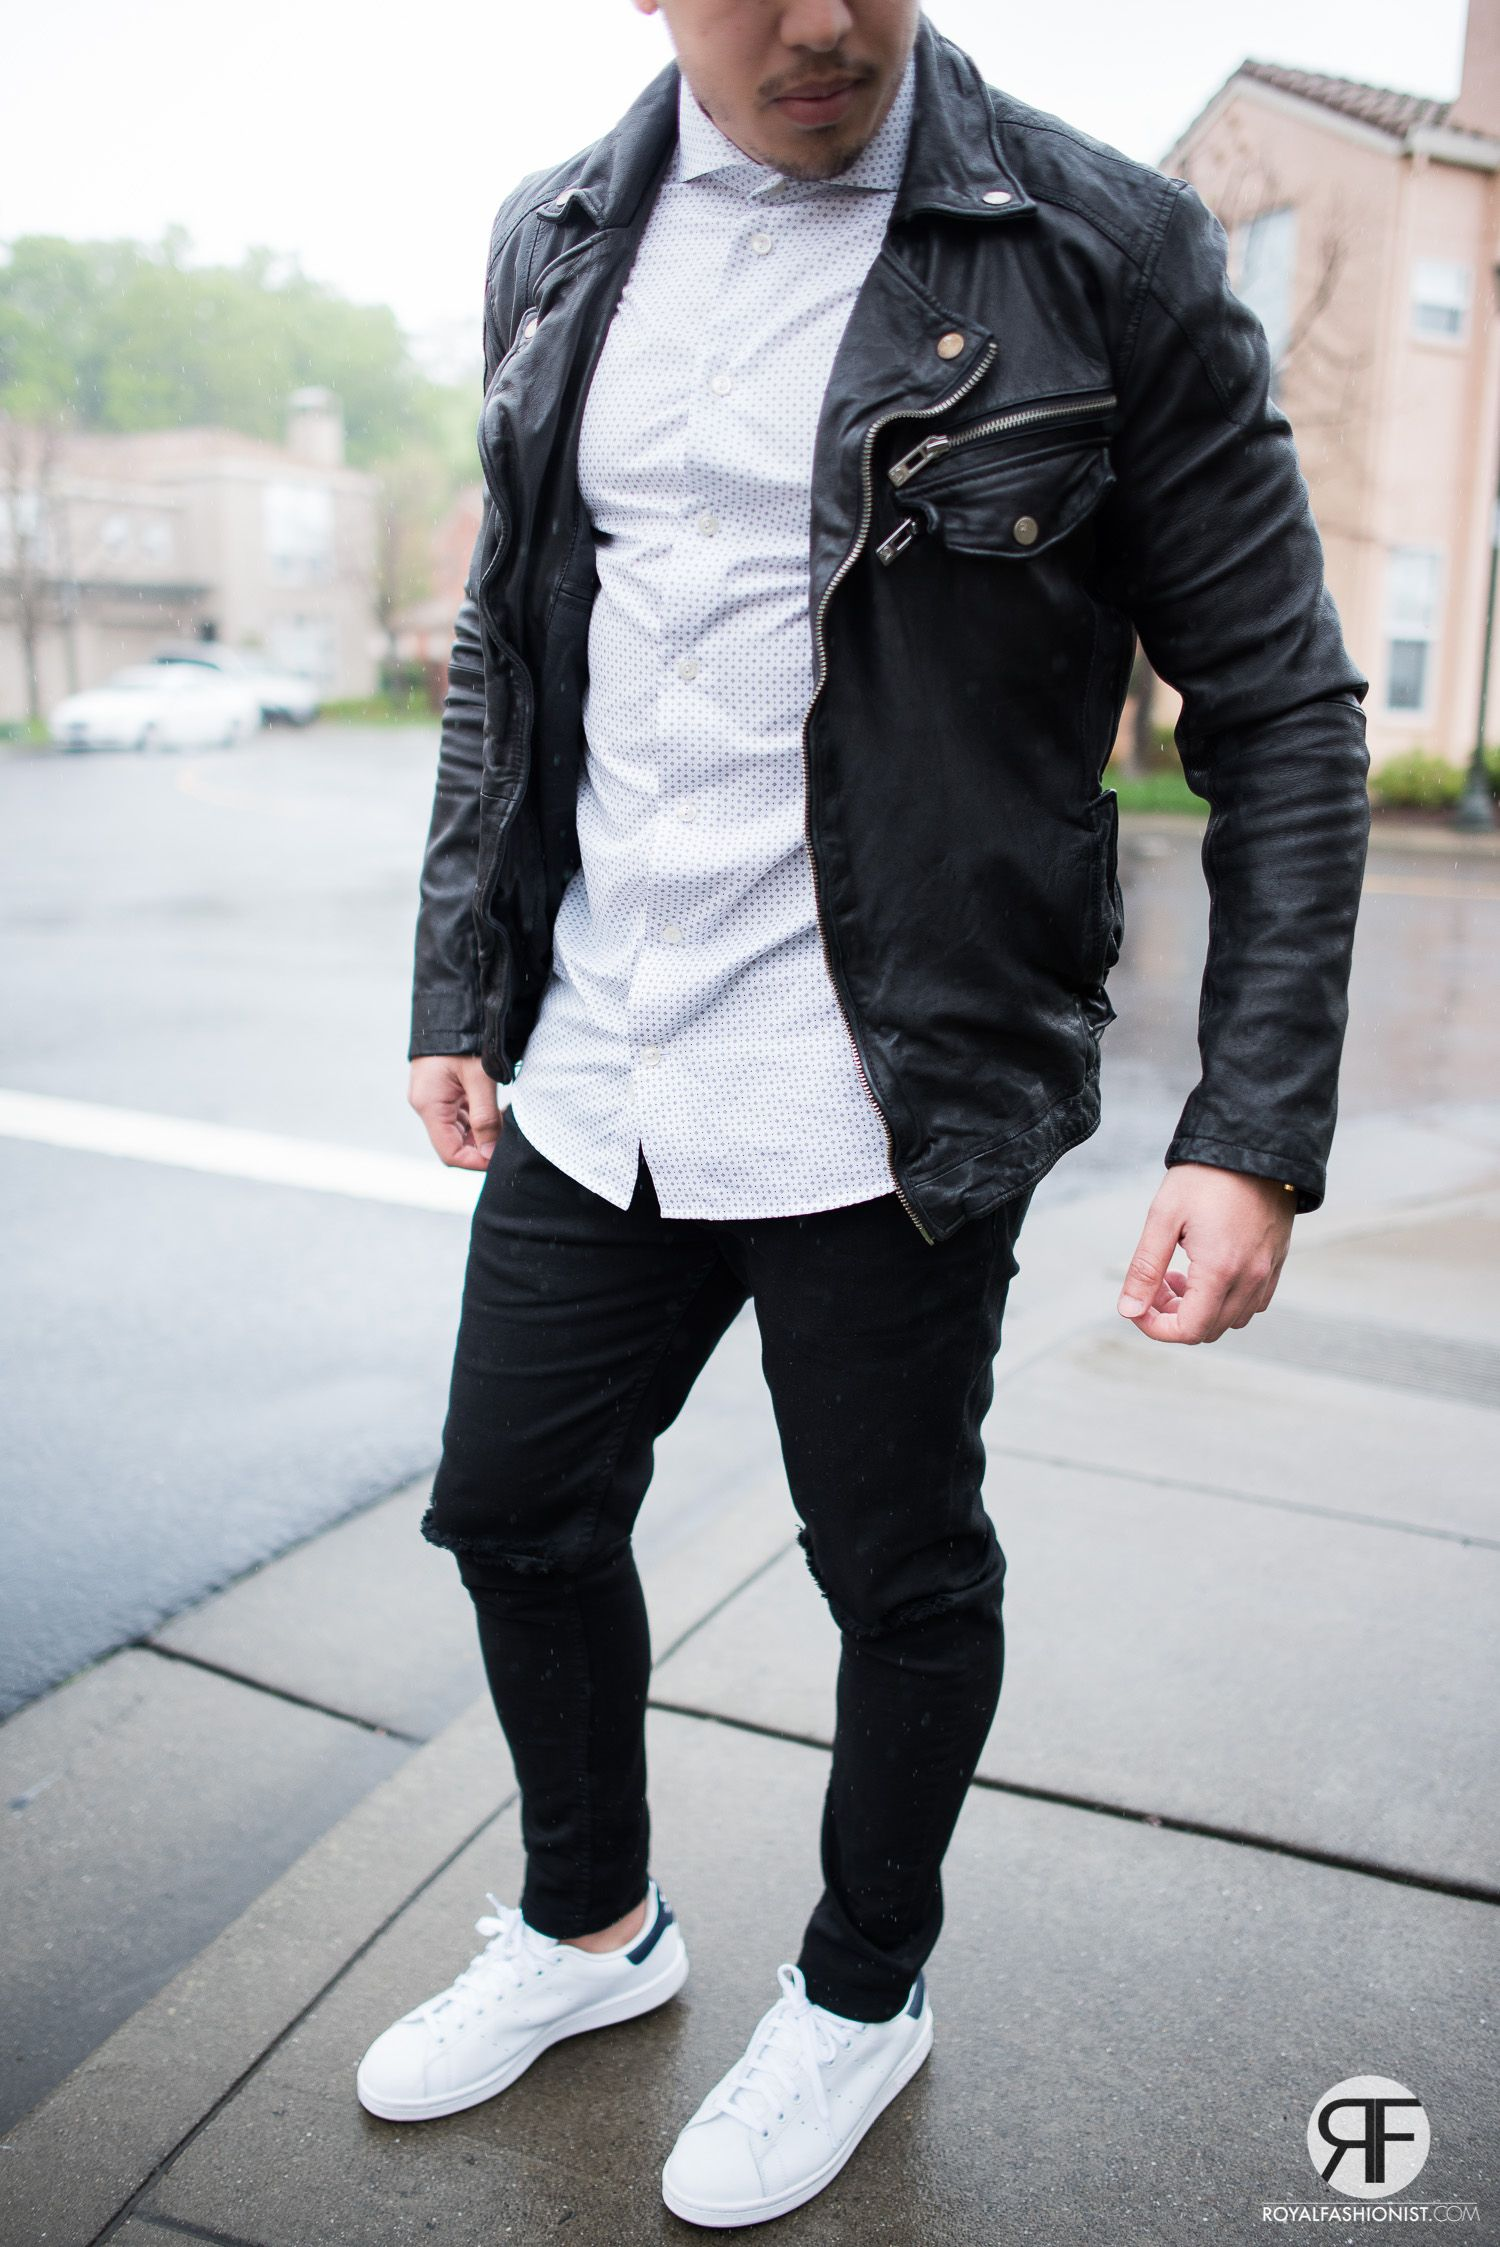 Men S Outfit Idea White Shirt Leather Jacket And Destroyed Jeans Royal Fashionist Urban Style Outfits Mens Fashion Urban Mens Outfits [ 2247 x 1500 Pixel ]